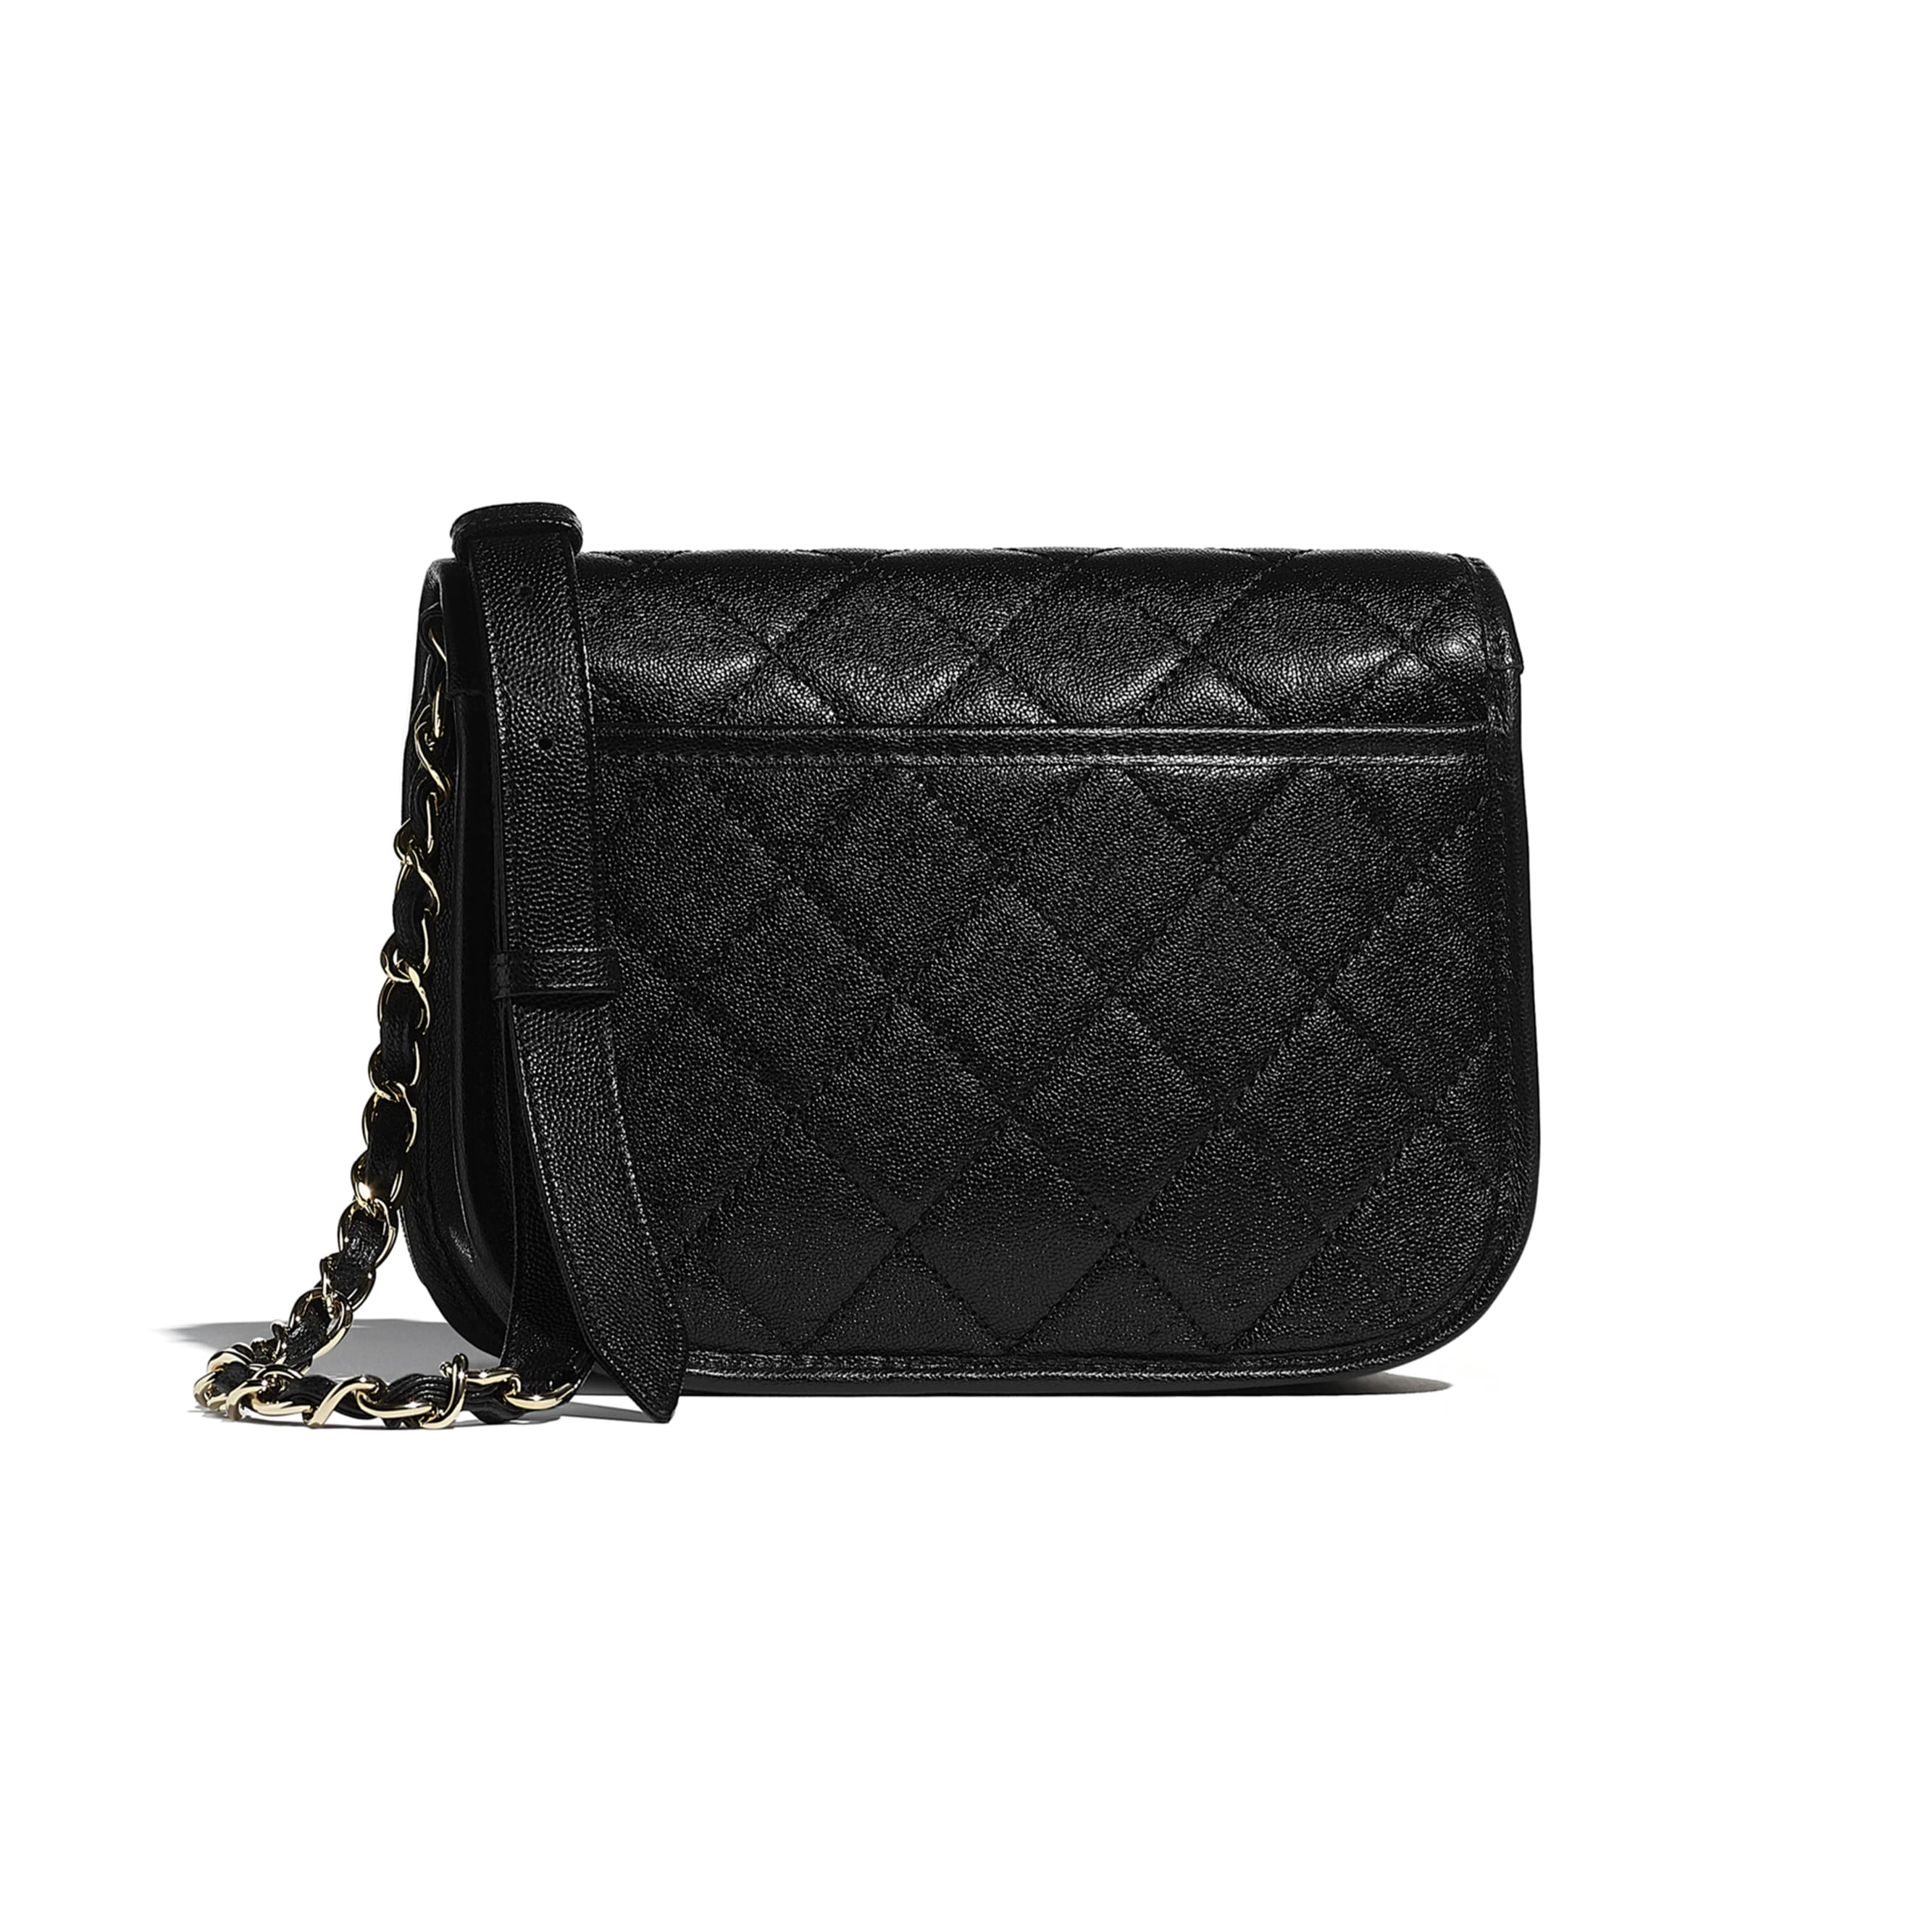 Small Messenger Bag - Black - Grained Calfskin & Gold-Tone Metal - CHANEL - Alternative view - see standard sized version